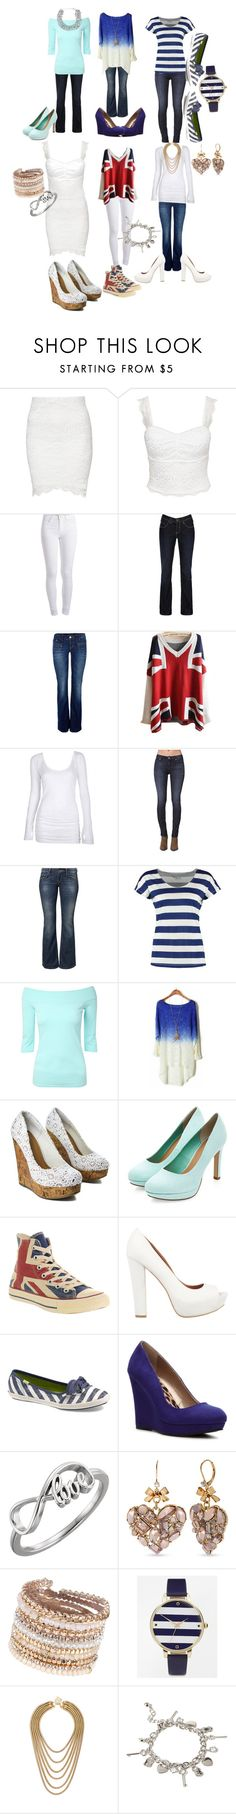 """""""Untitled #80"""" by lewebbz12 ❤ liked on Polyvore featuring Oneness, Pieces, Bench, ONLY, Bullhead Denim Co., LTB by Little Big, TWINTIP, Jane Norman, Converse and SPURR"""